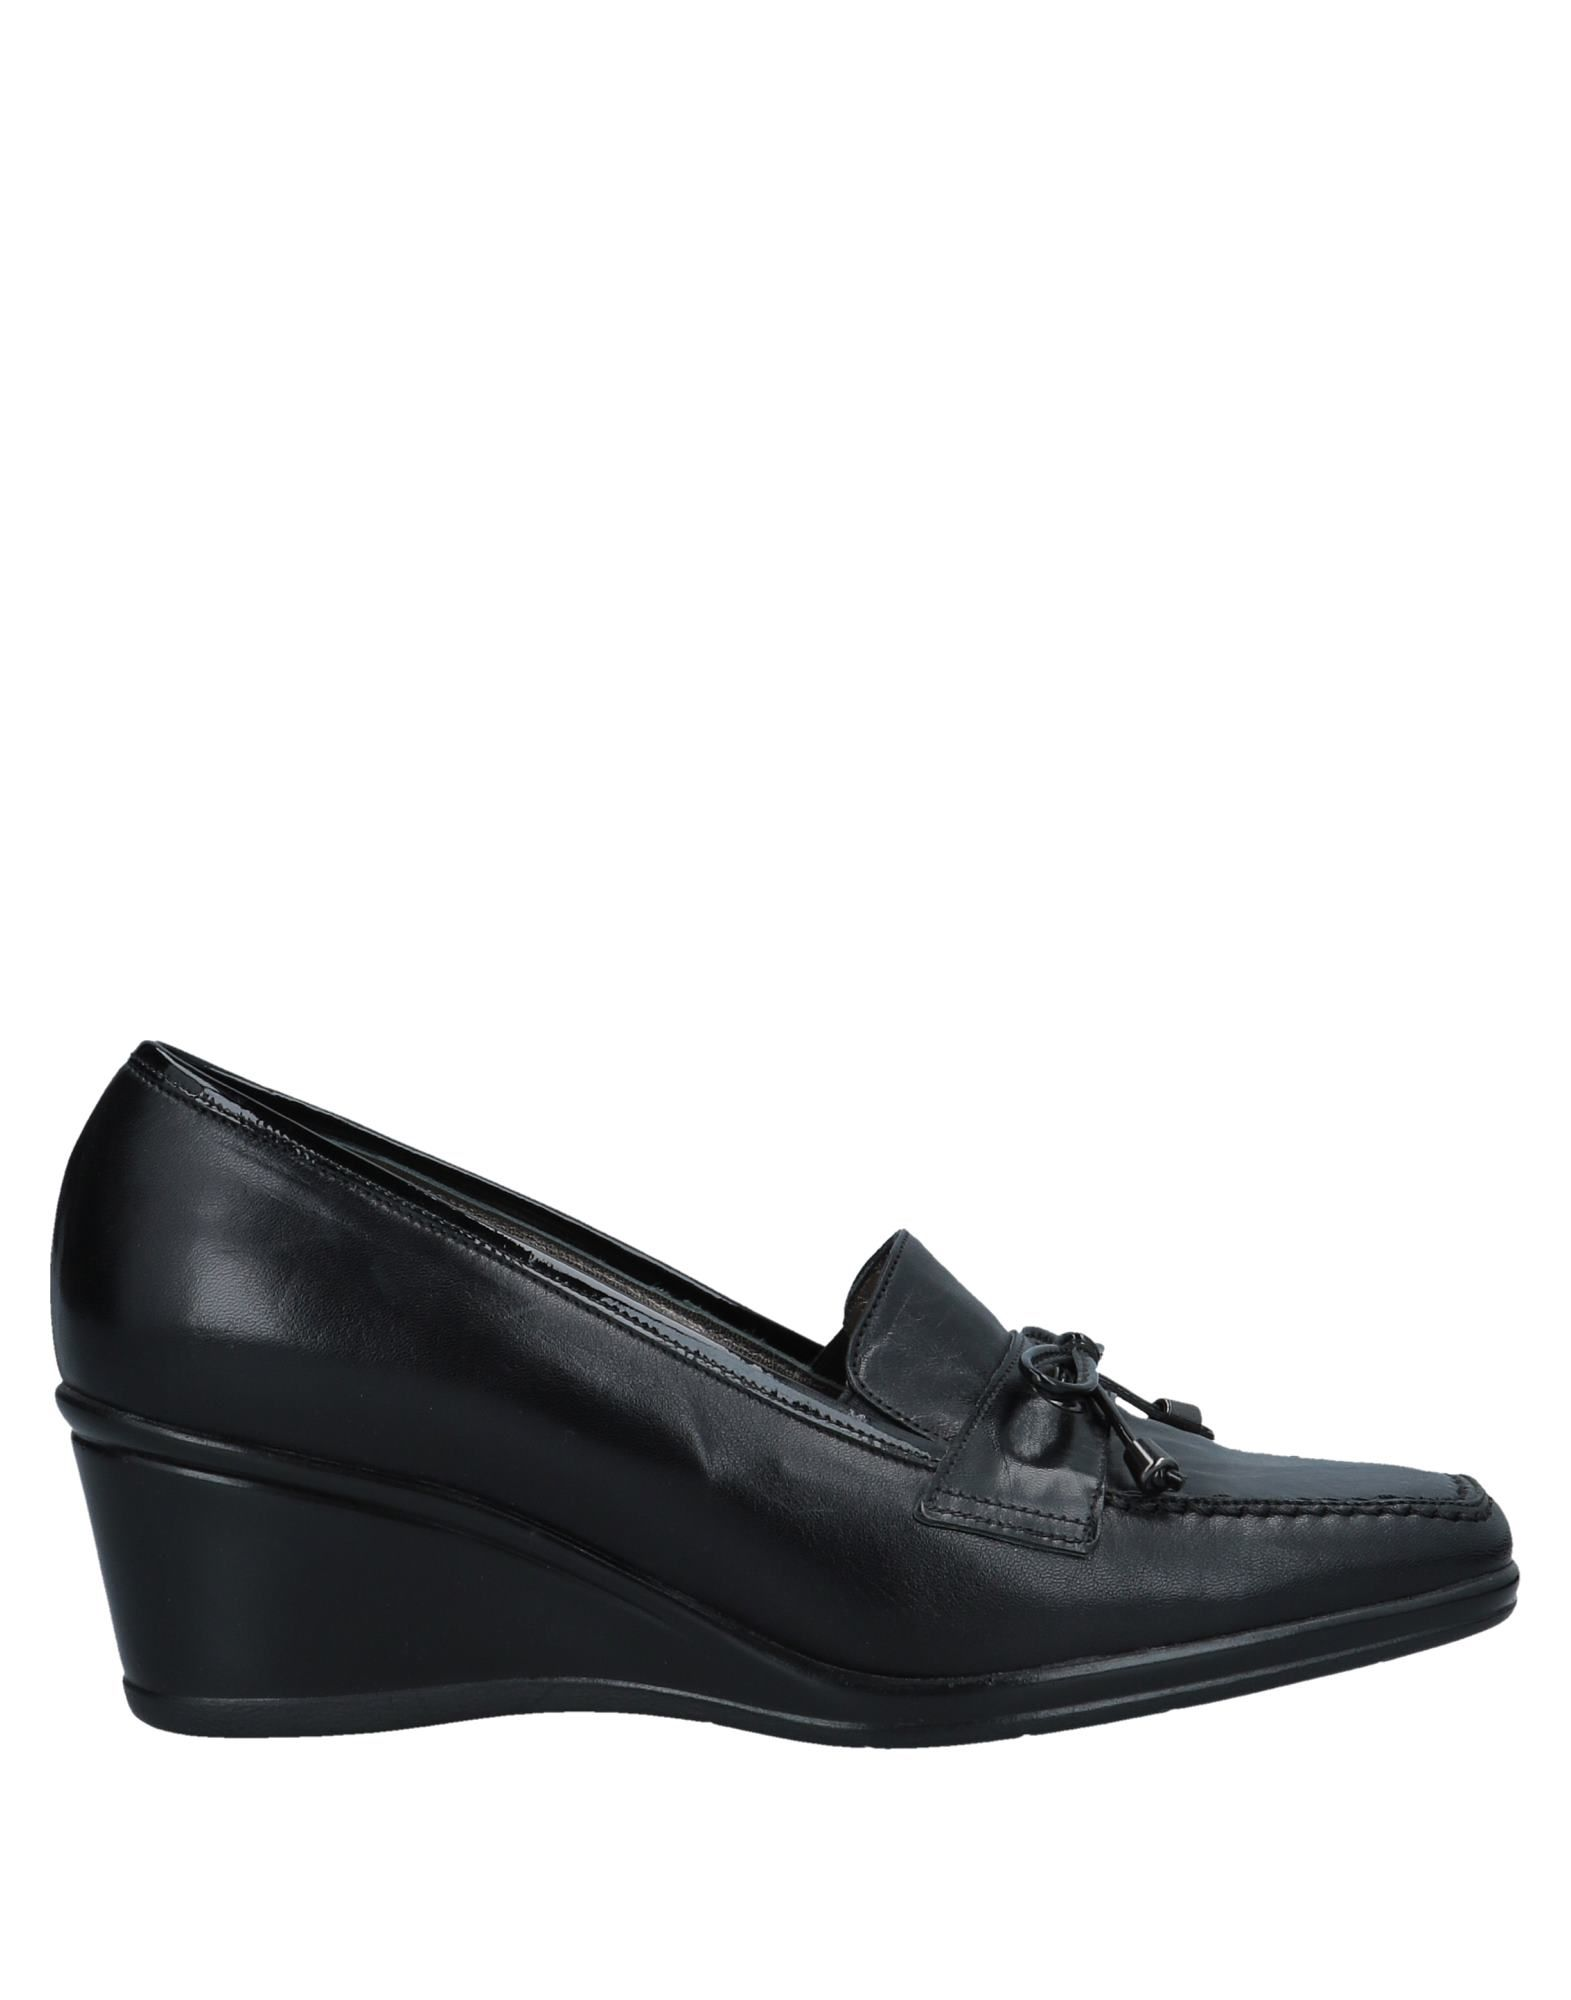 Confort Loafers  - Women Confort Loafers online on  Loafers Australia - 11558578AI 2d8fa1